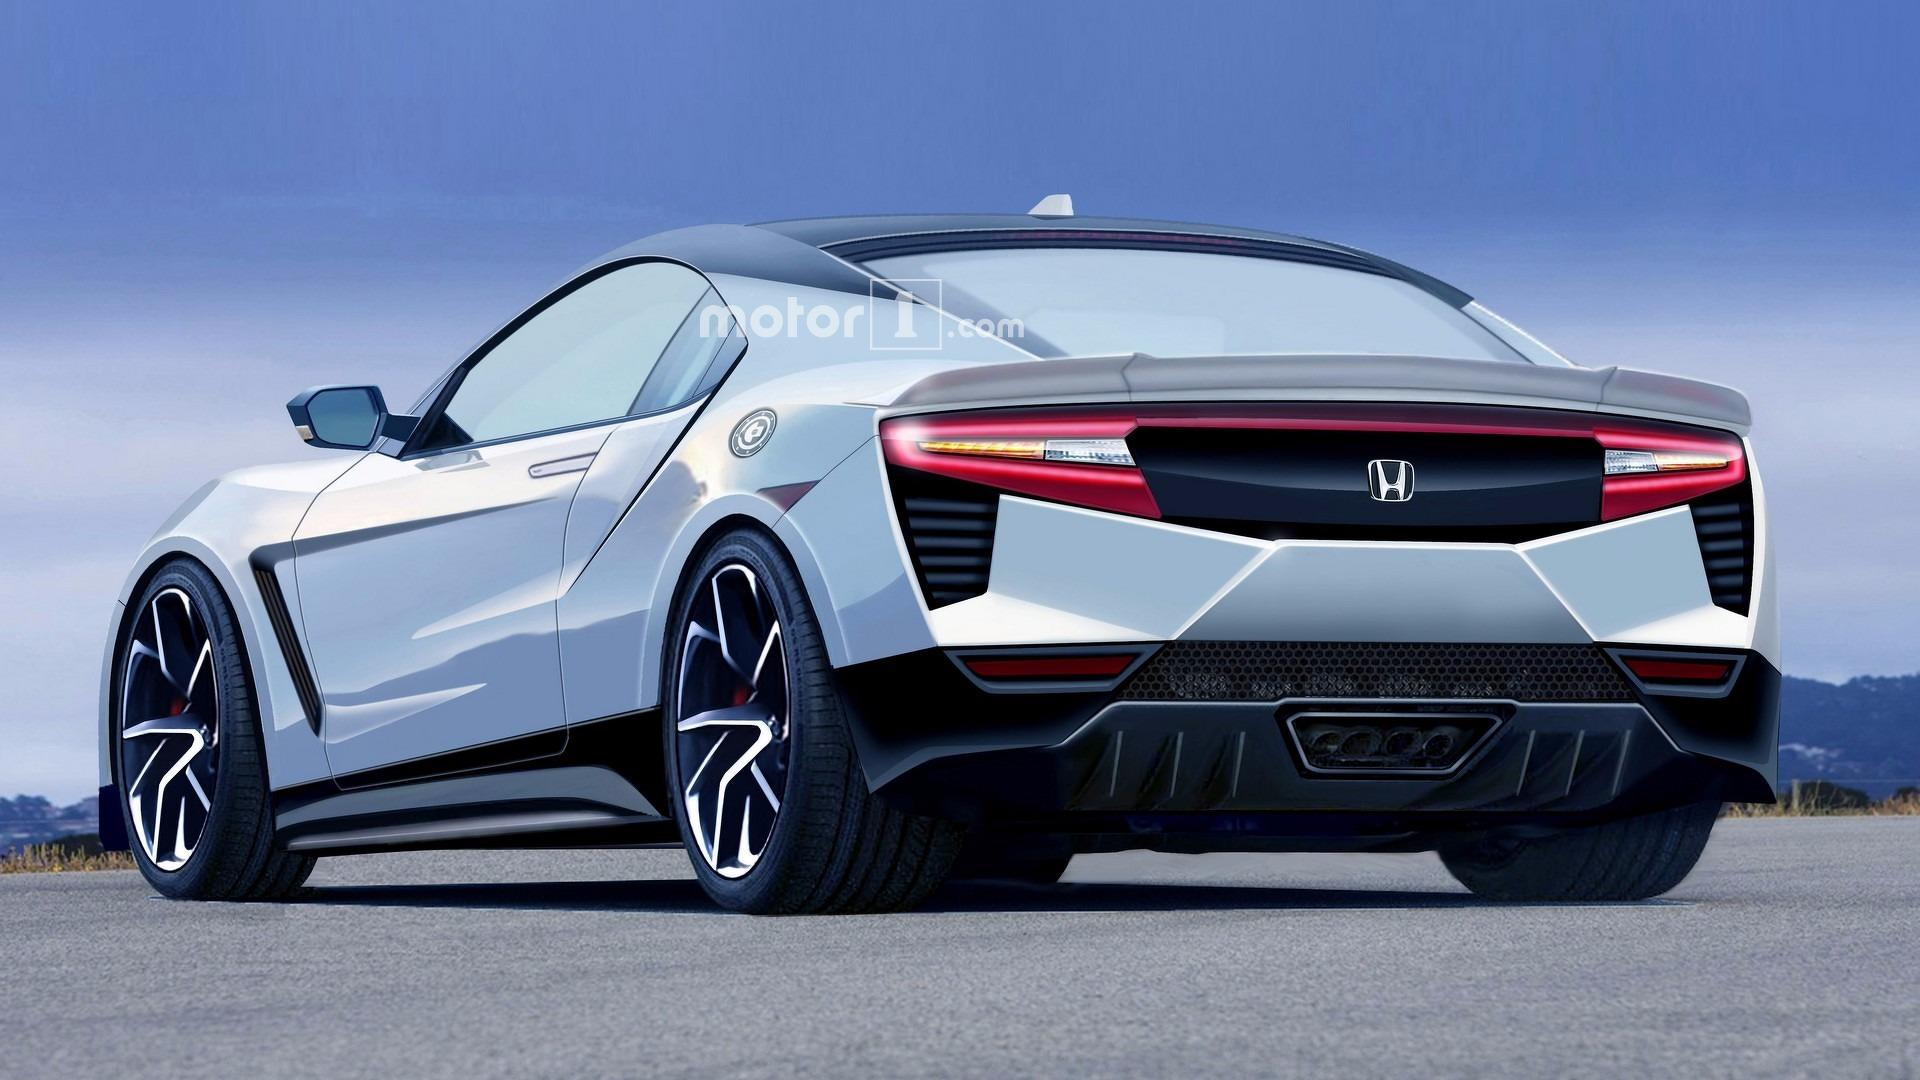 2019 honda s2000 render makes us wish it were real